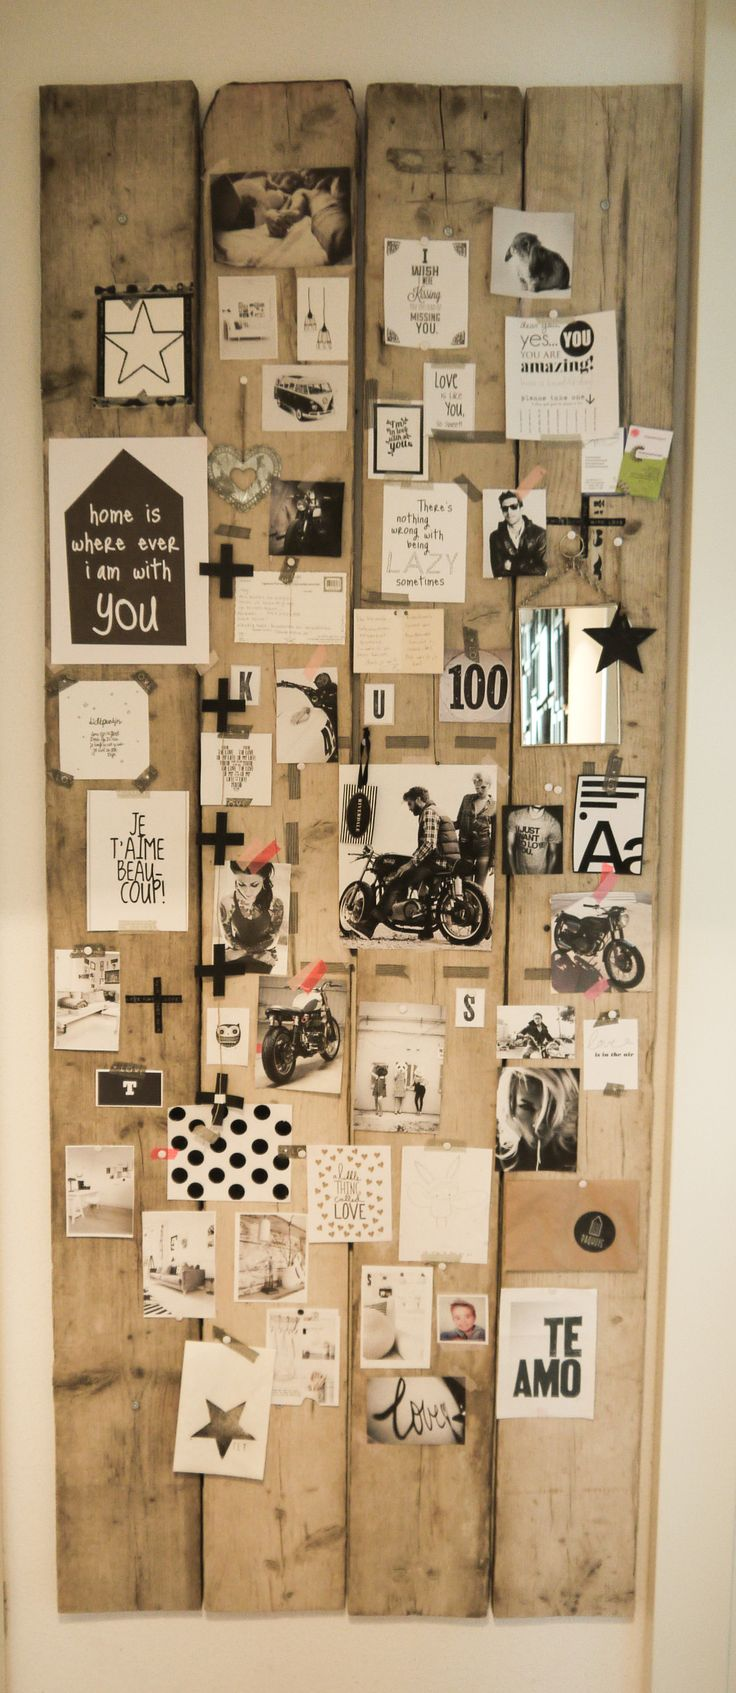 Use scraps of wood to create the board and stick pictures, notes, ideas, etc. to it. Rather than gluing stuff to a poster board, this would be a more changeable board!